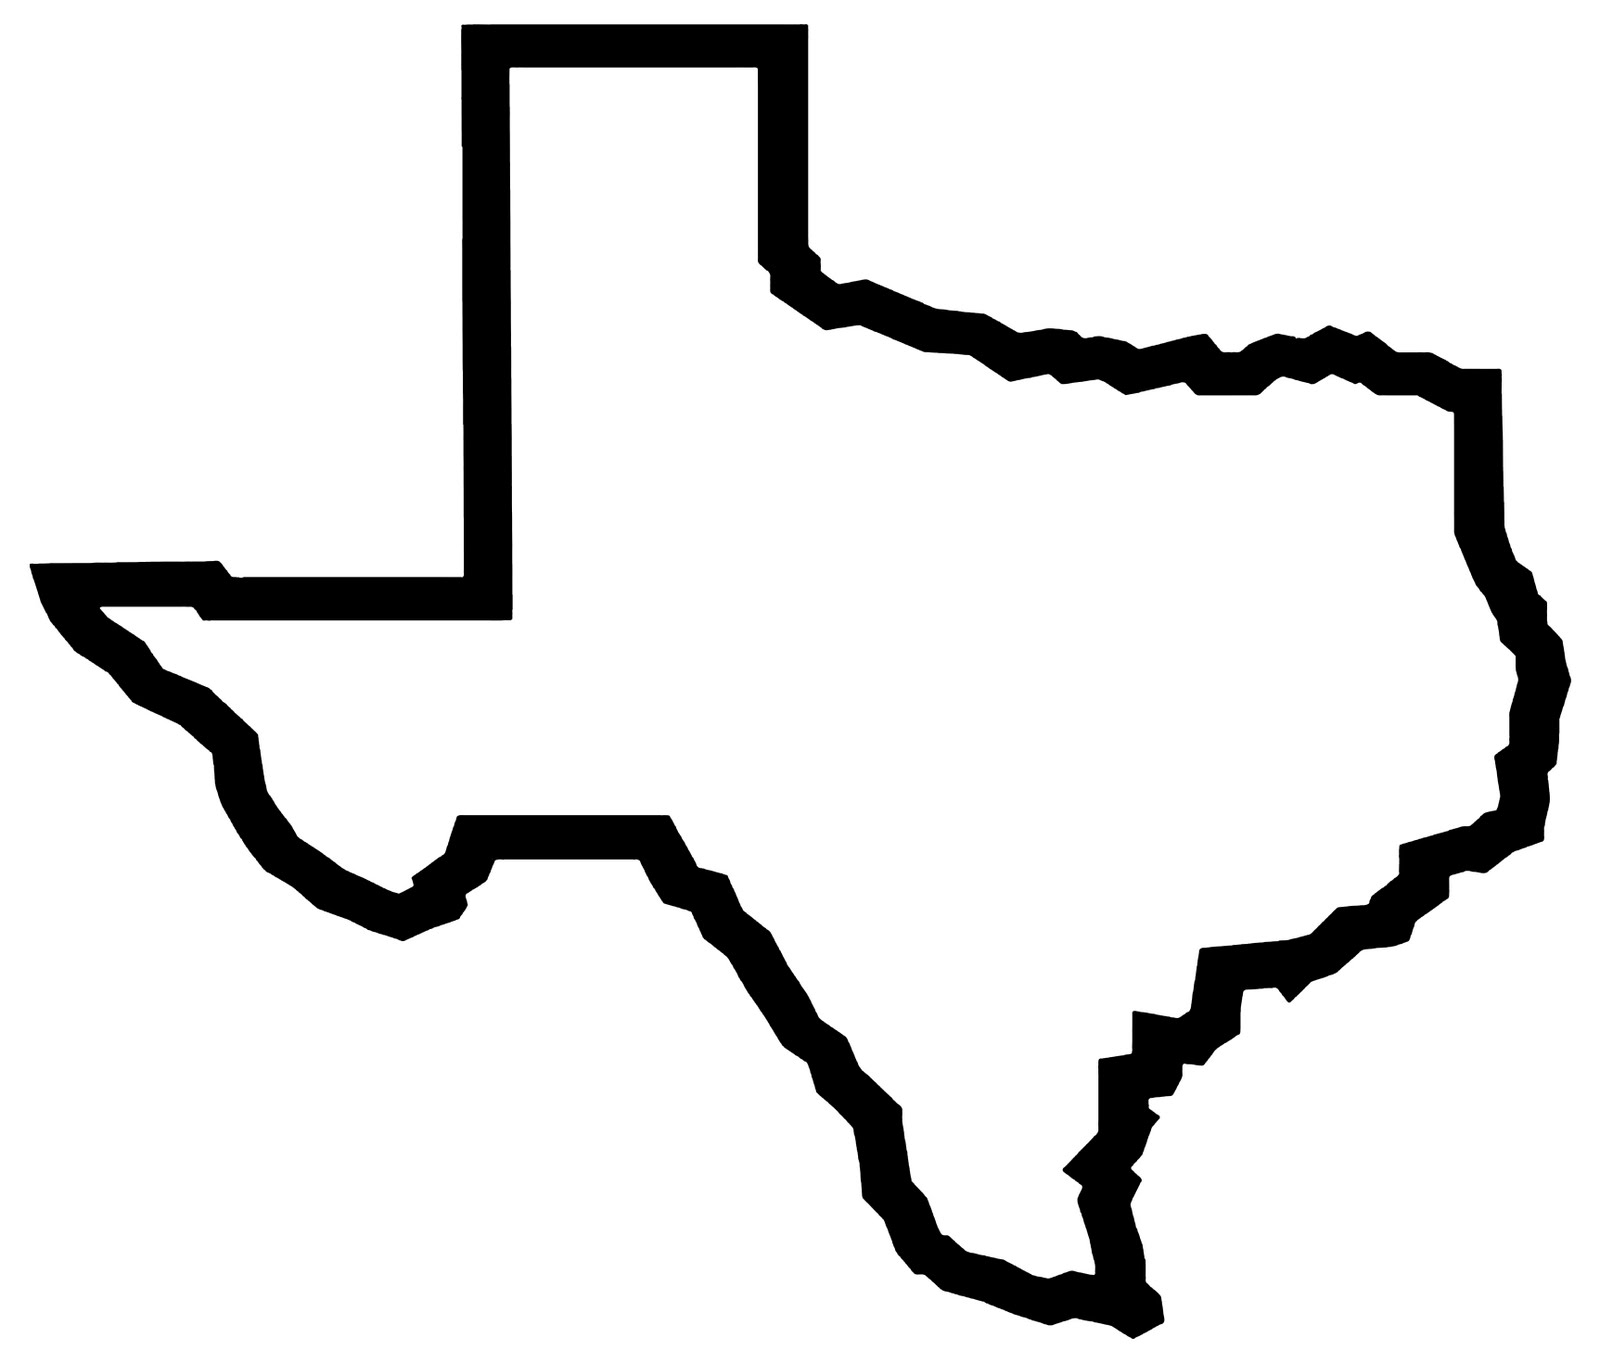 Texas outline clipart free images 3